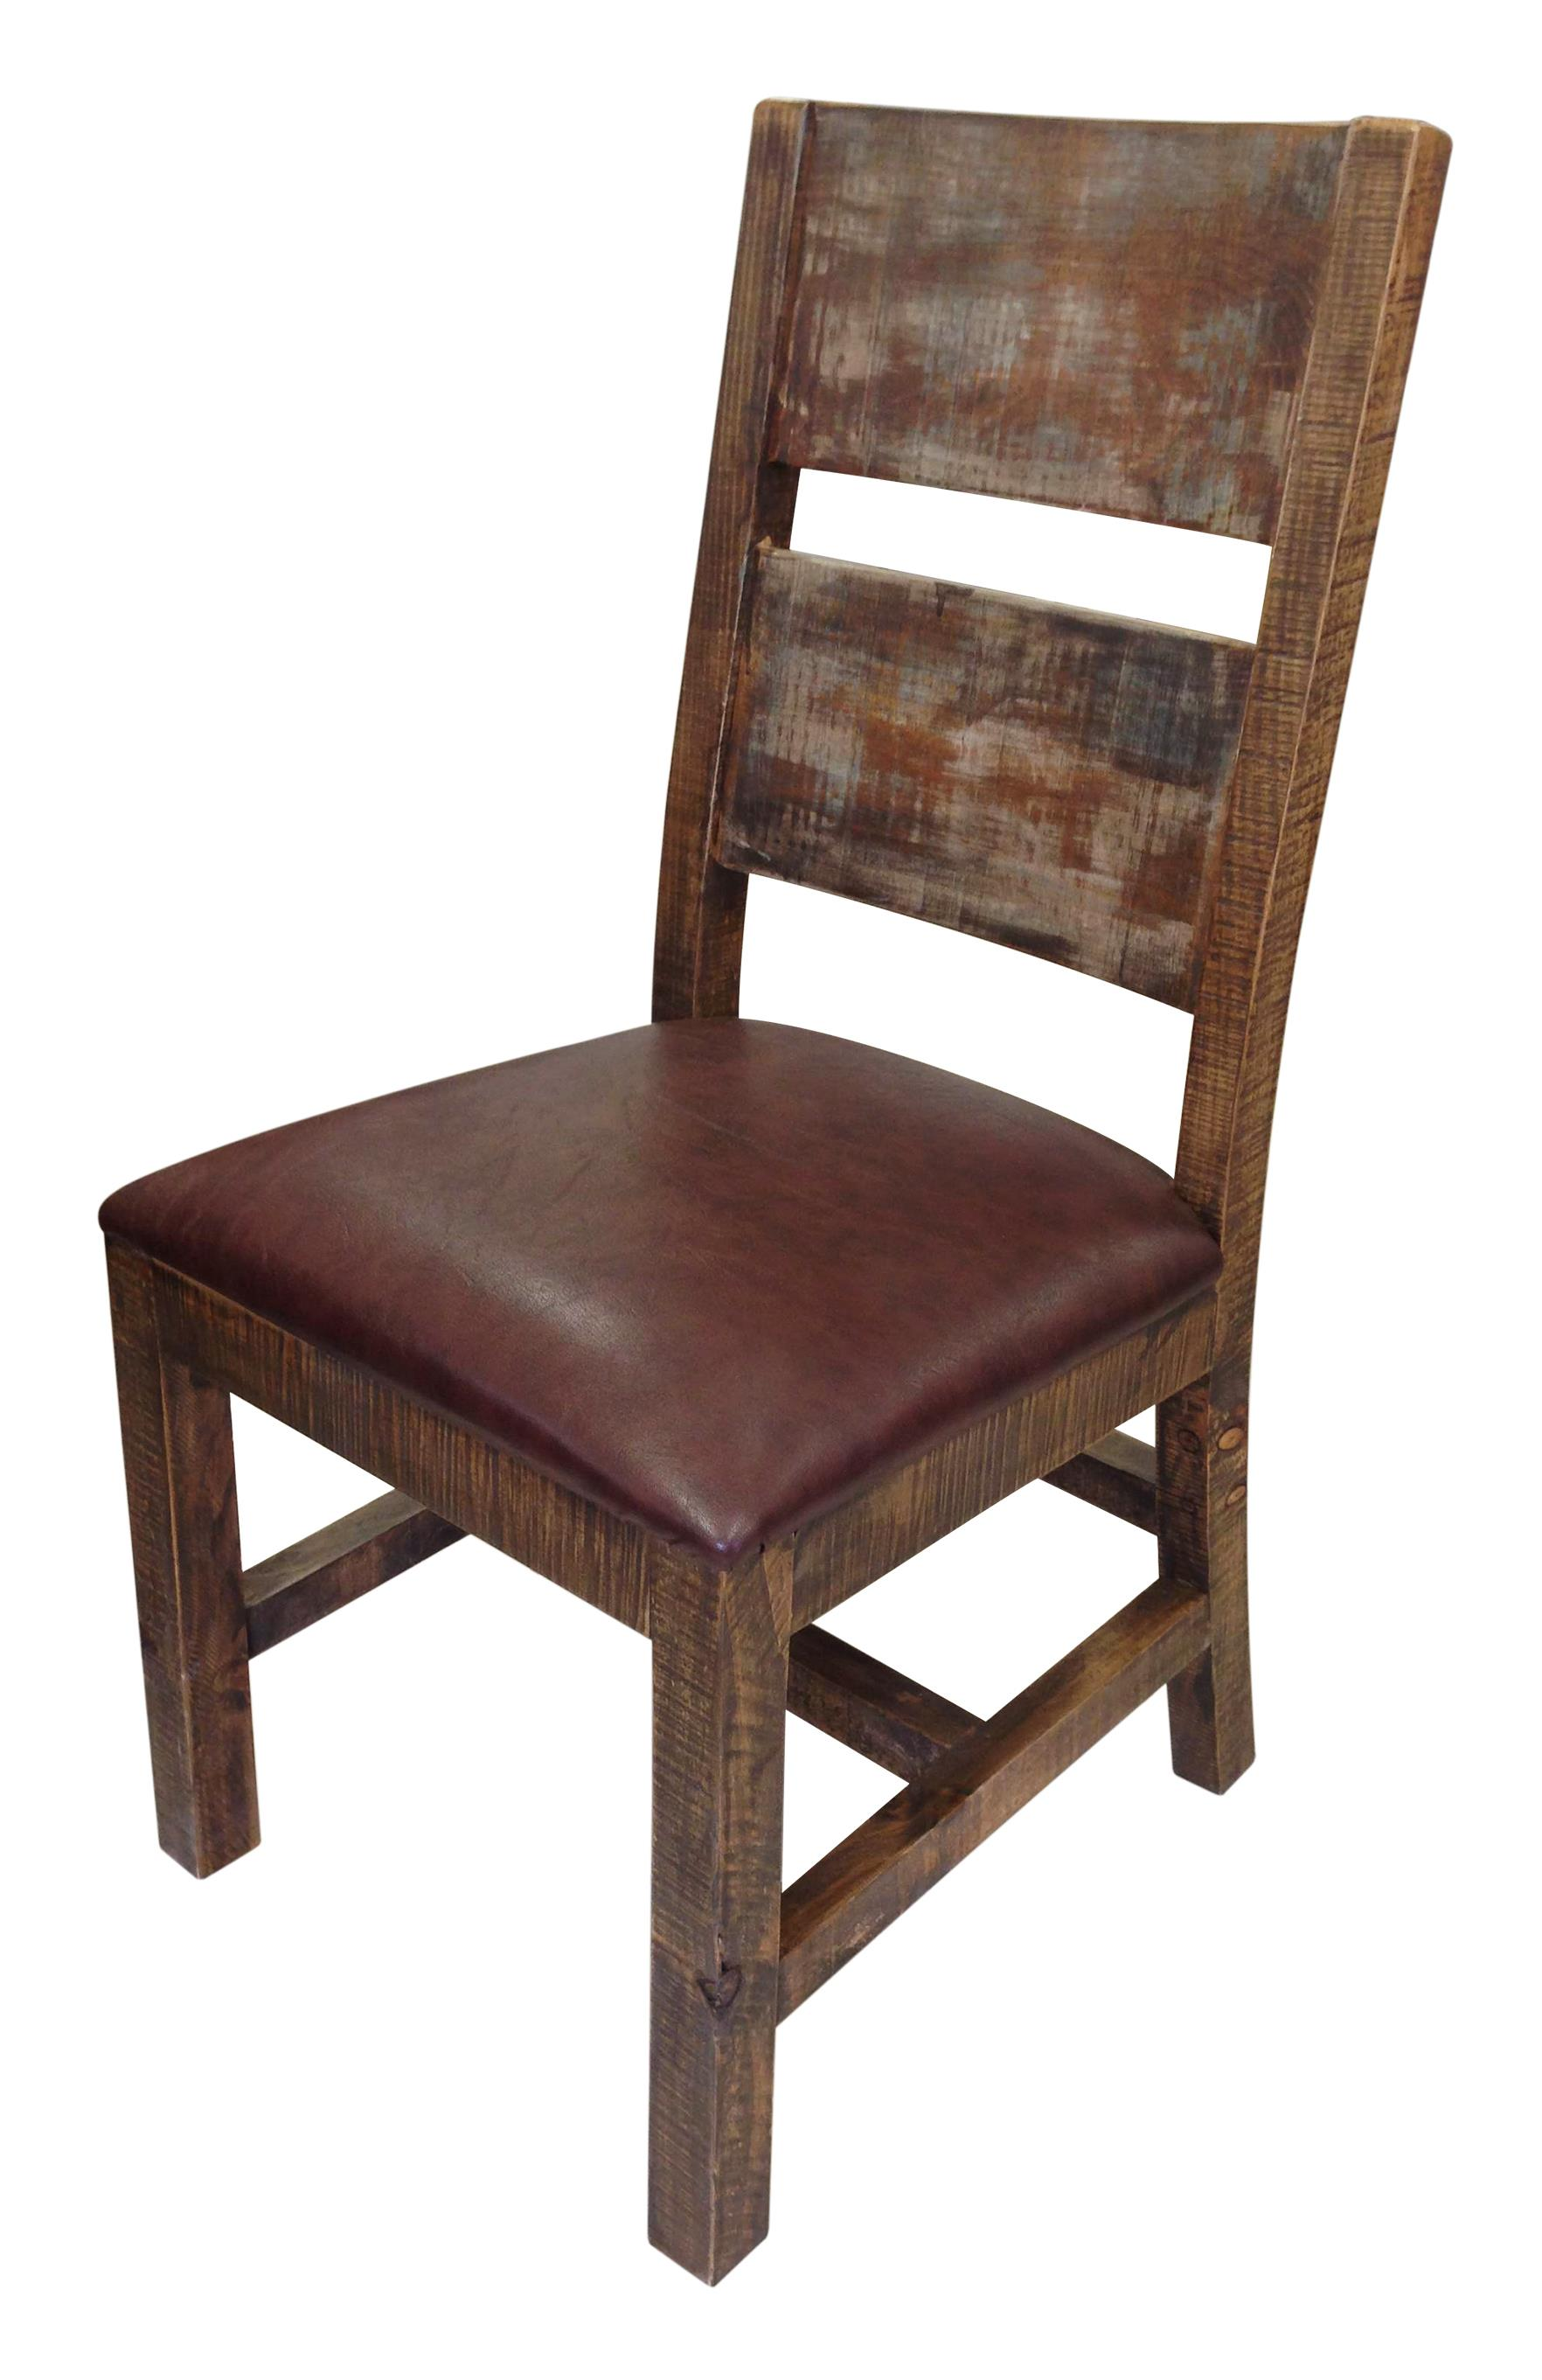 900 Antique Solid Wood Chair with Bonded Leather Seat by International Furniture Direct at Pedigo Furniture